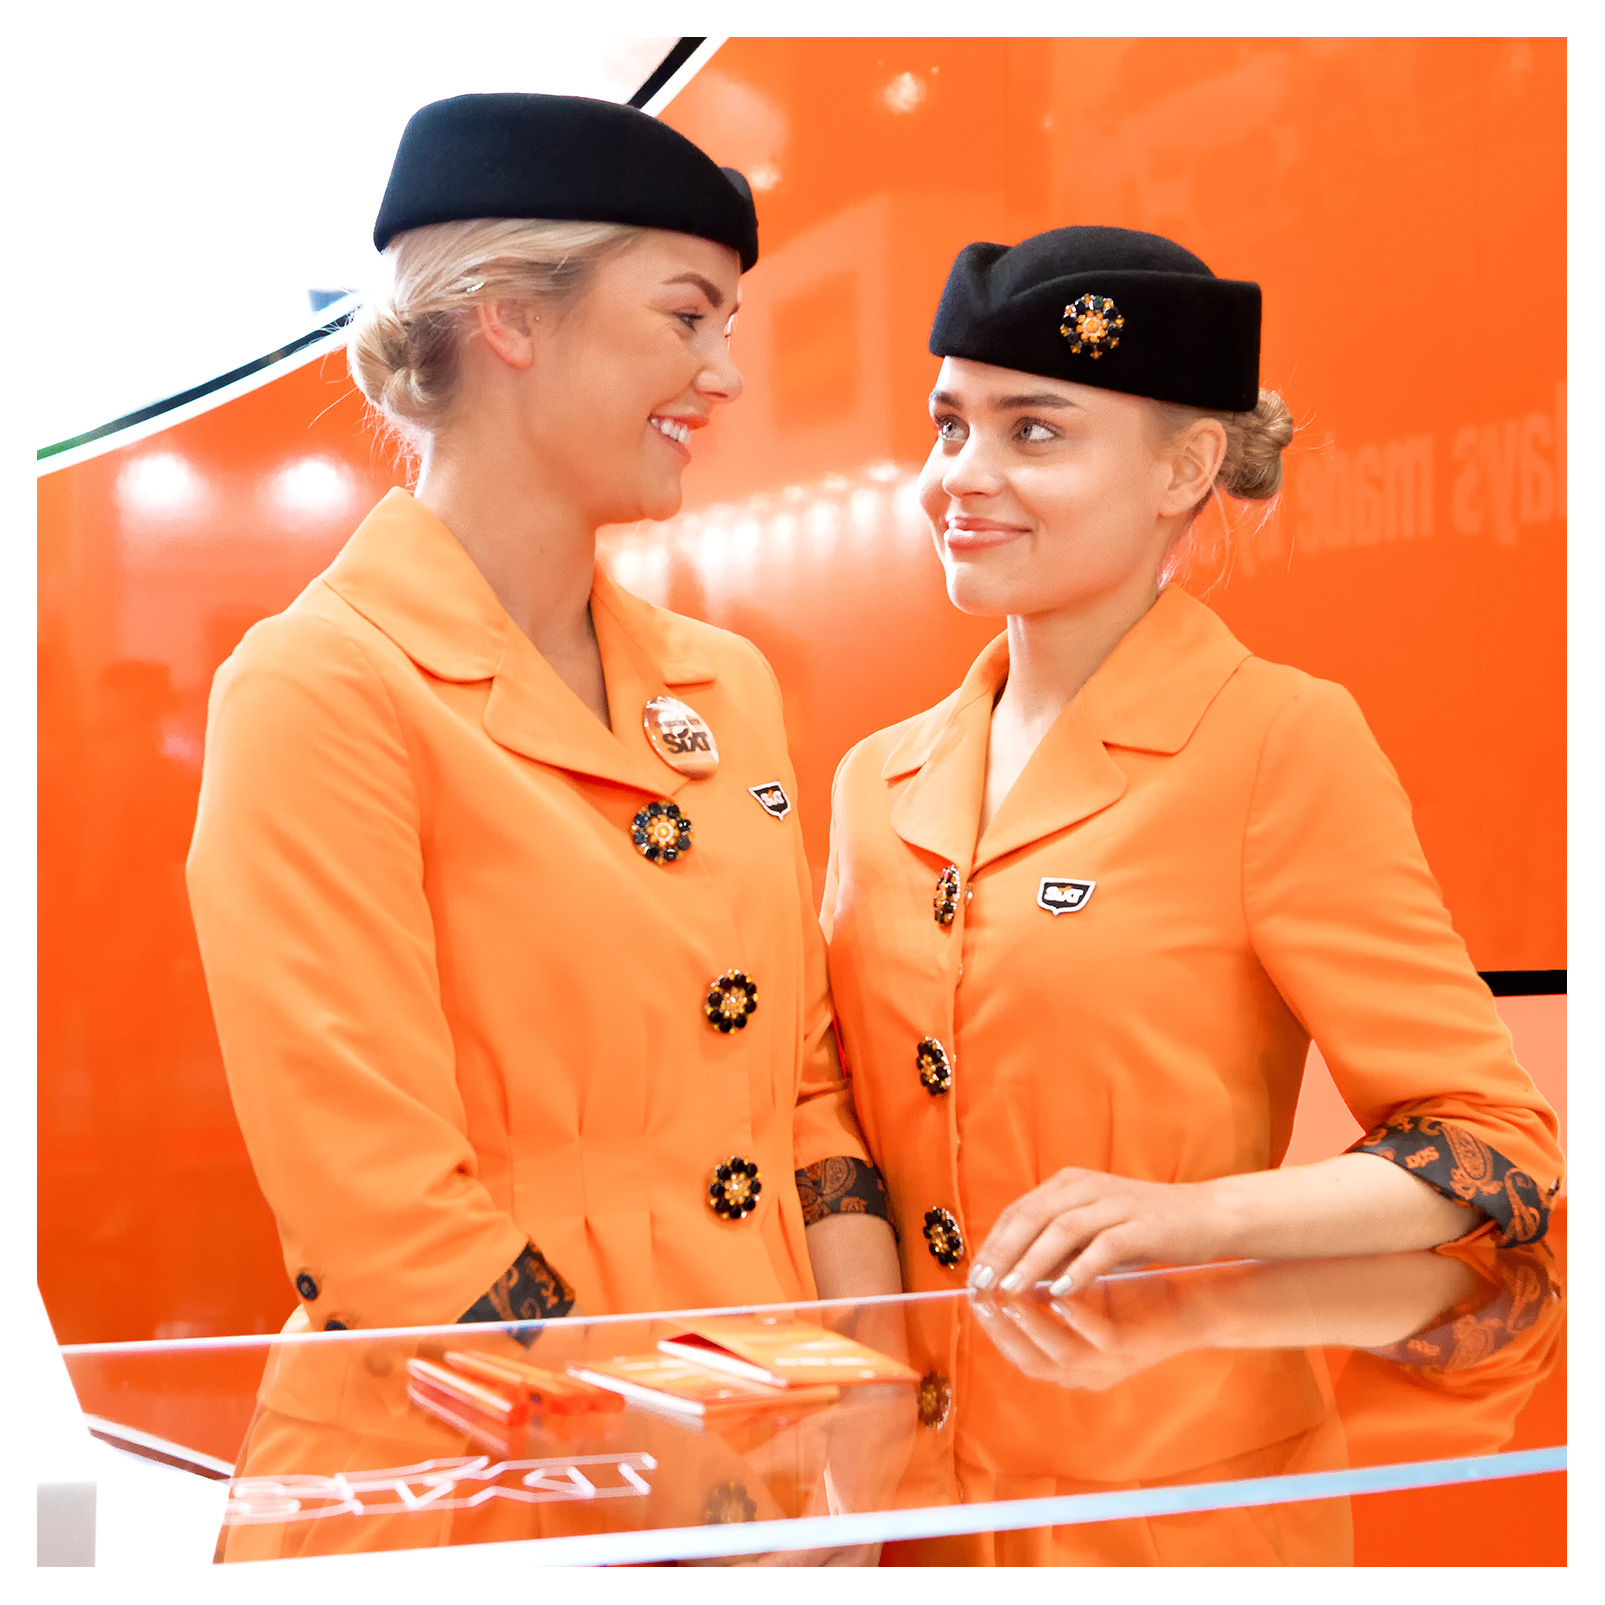 PR photography: Friendly exhibition hostesses for Sixt car hire, World Travel Market 2018, ExCel London